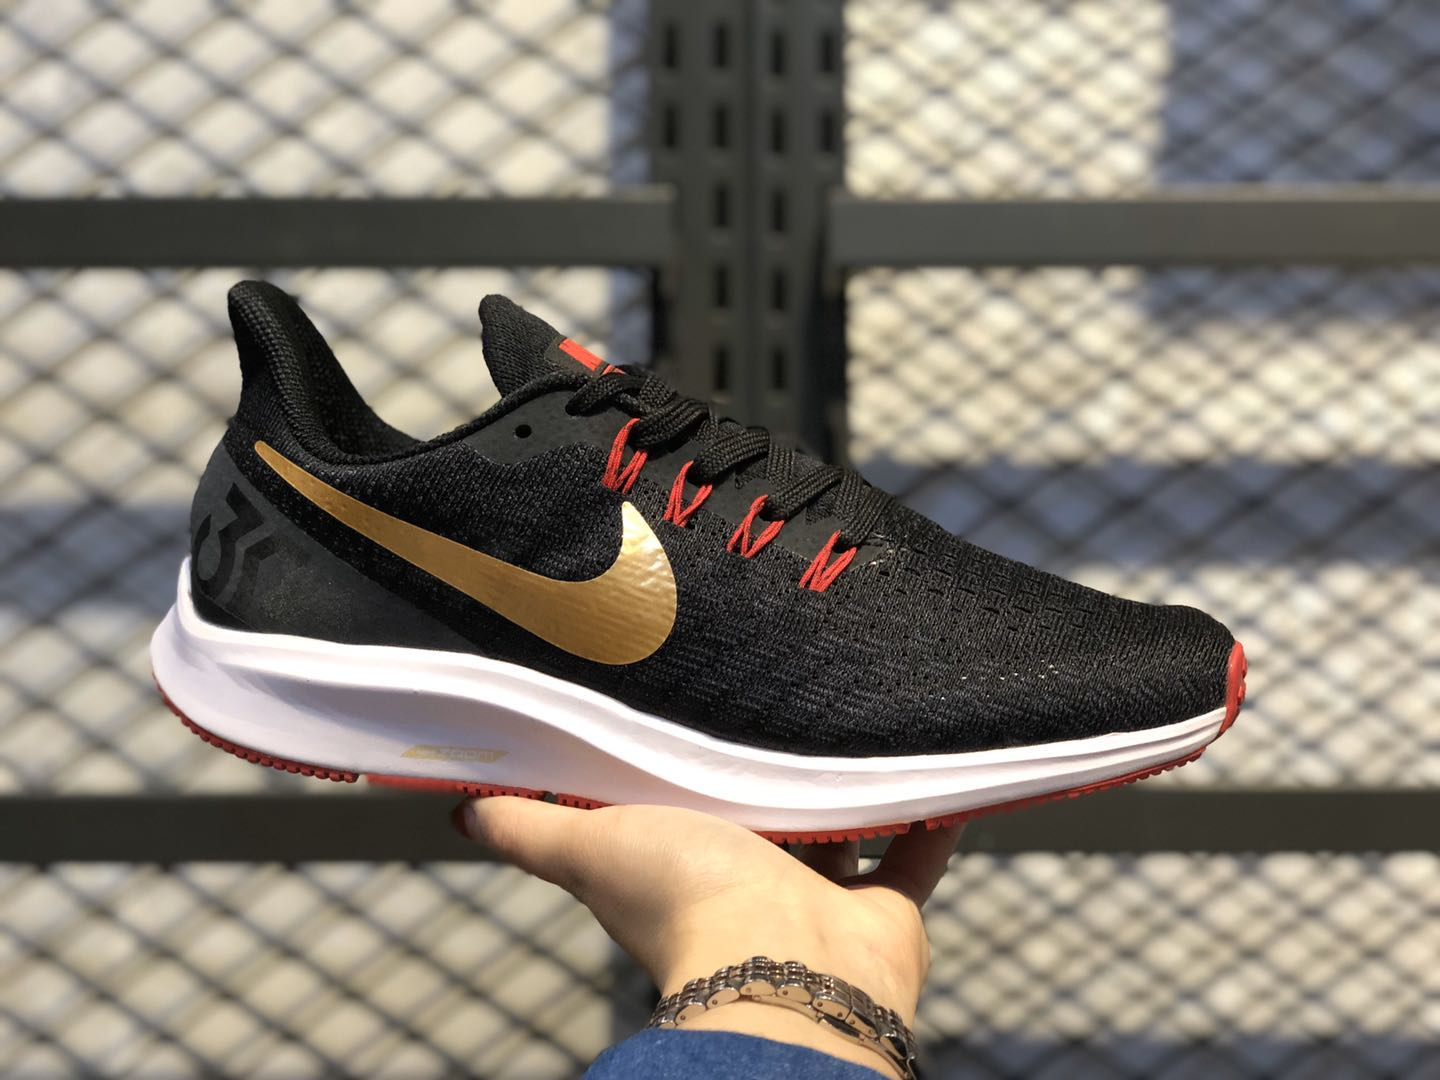 Nike Air Zoom Pegasus 35 Core Black/Gold-Red Running Shoes 942851-018